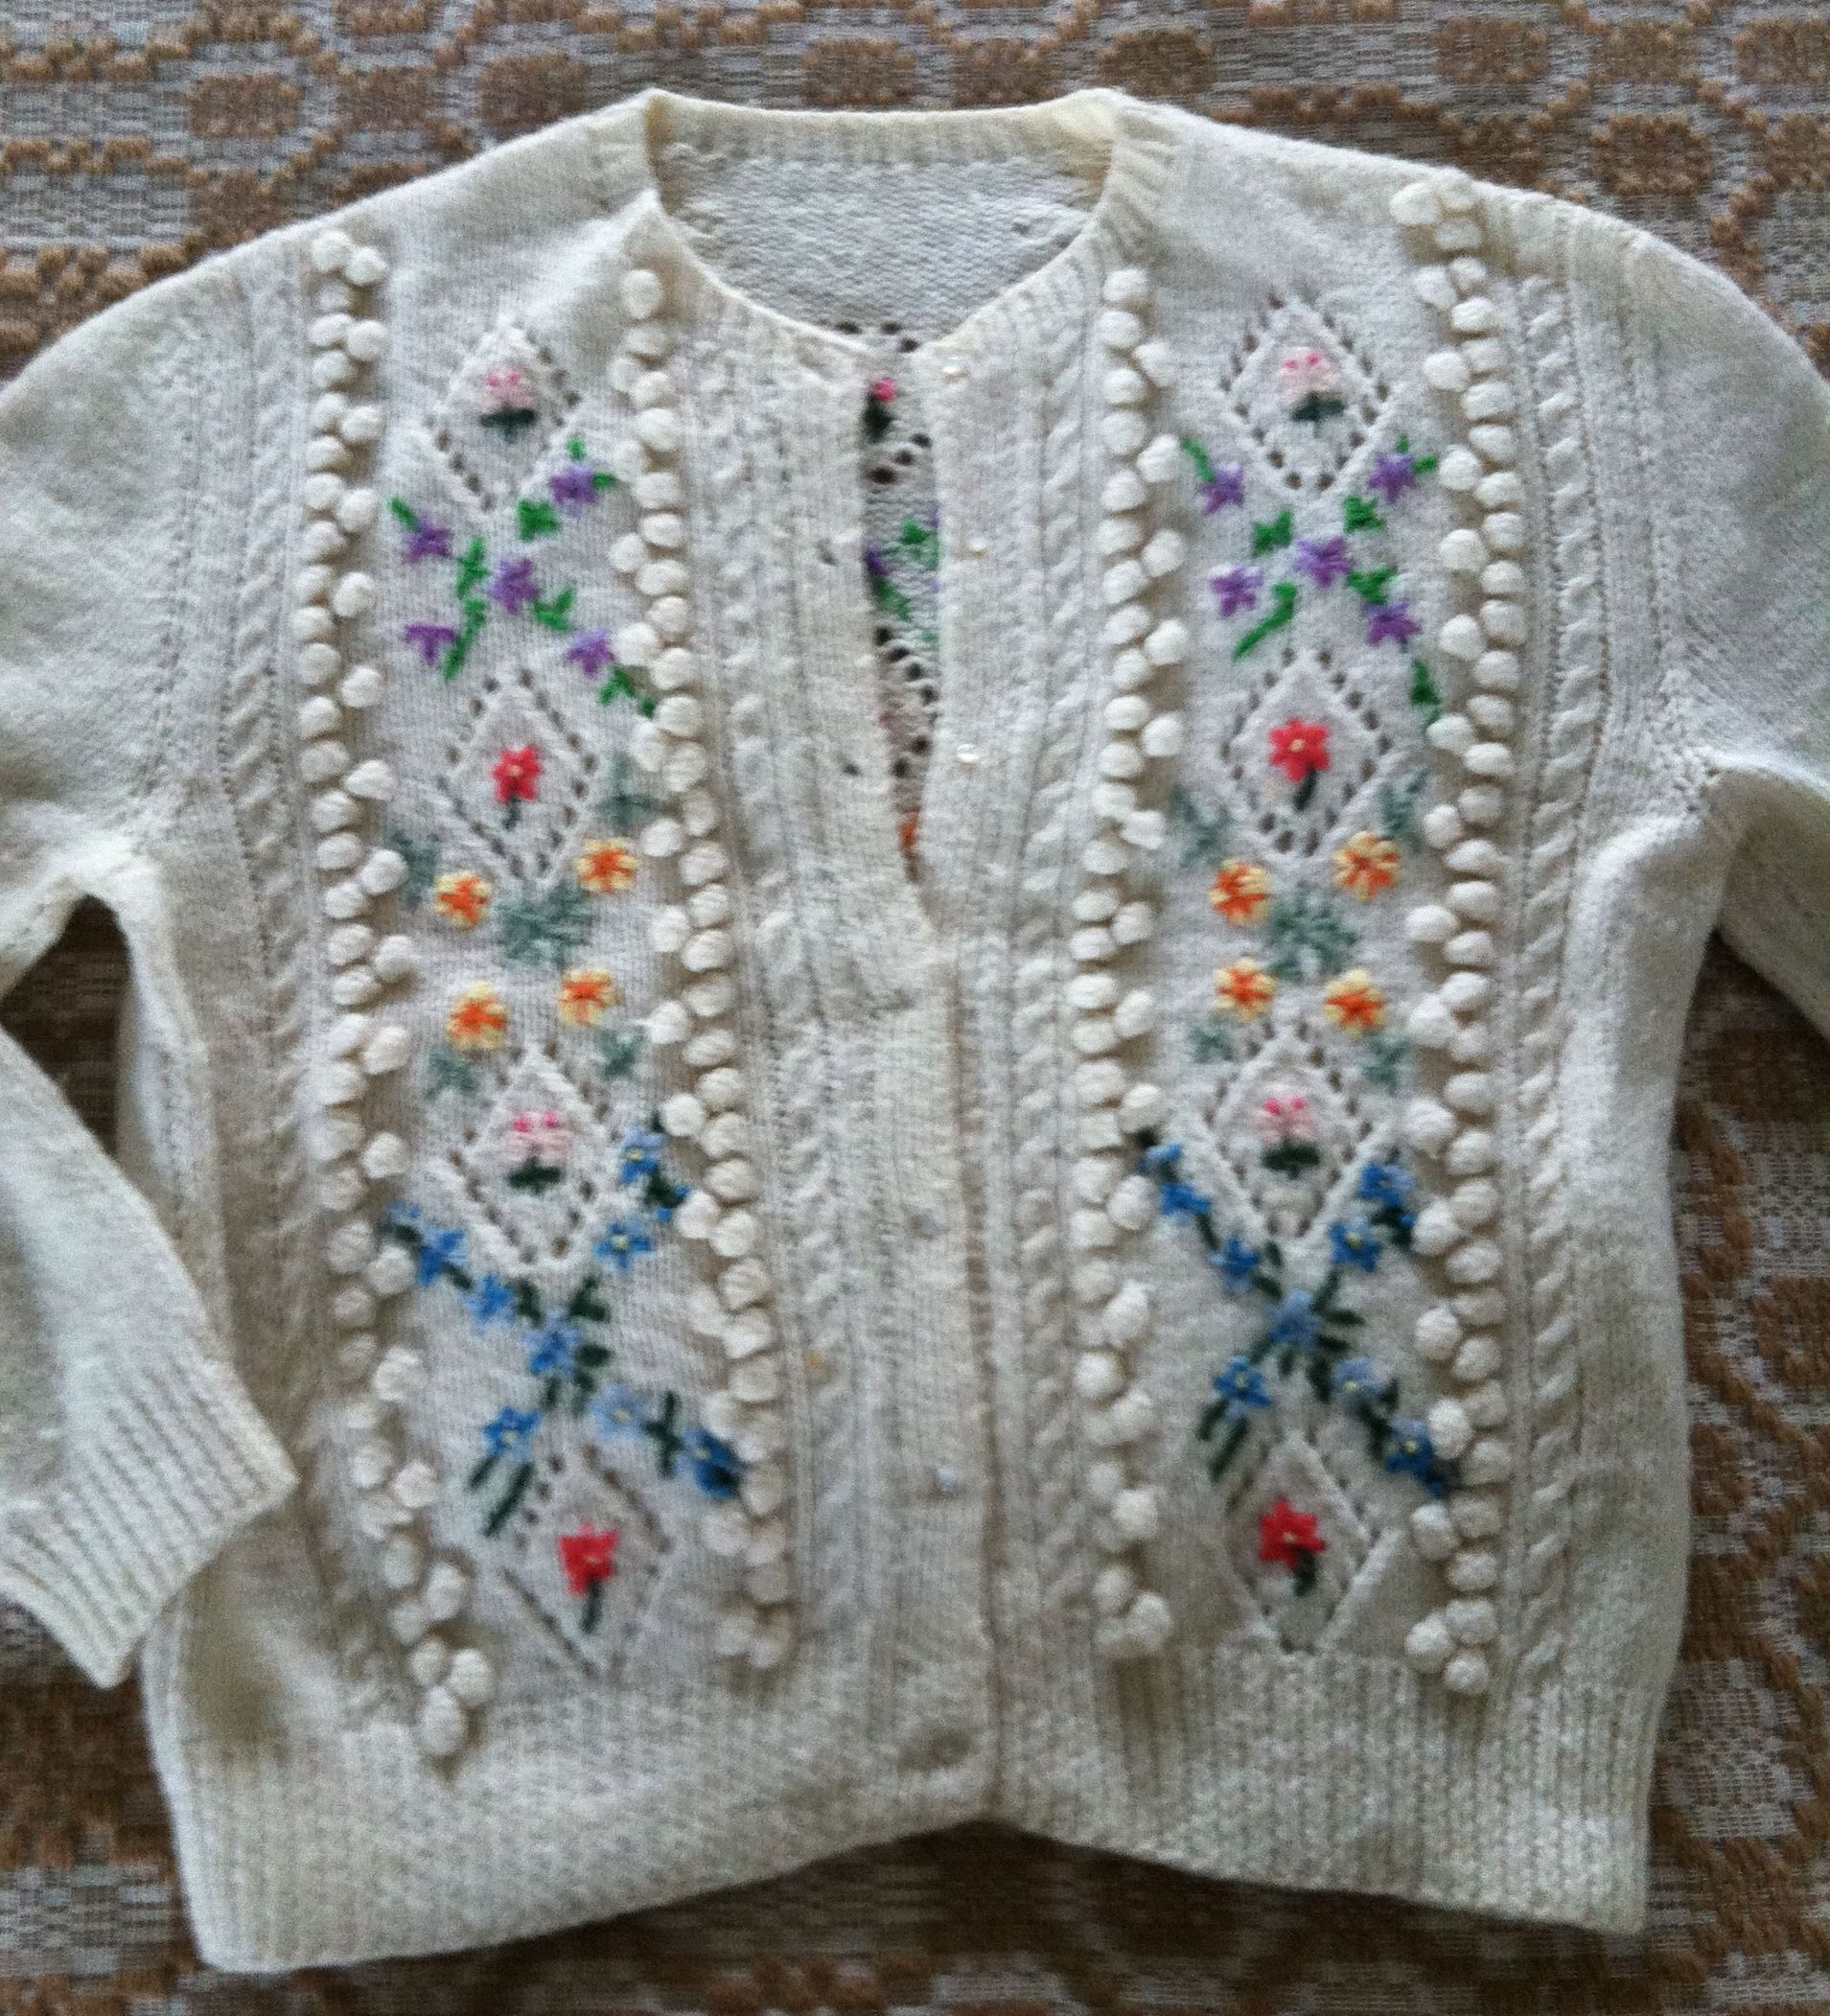 c5c7dd268cc61e Tyrolean Sweater. There are a few precious sweaters that were knitted by my  husband s mother